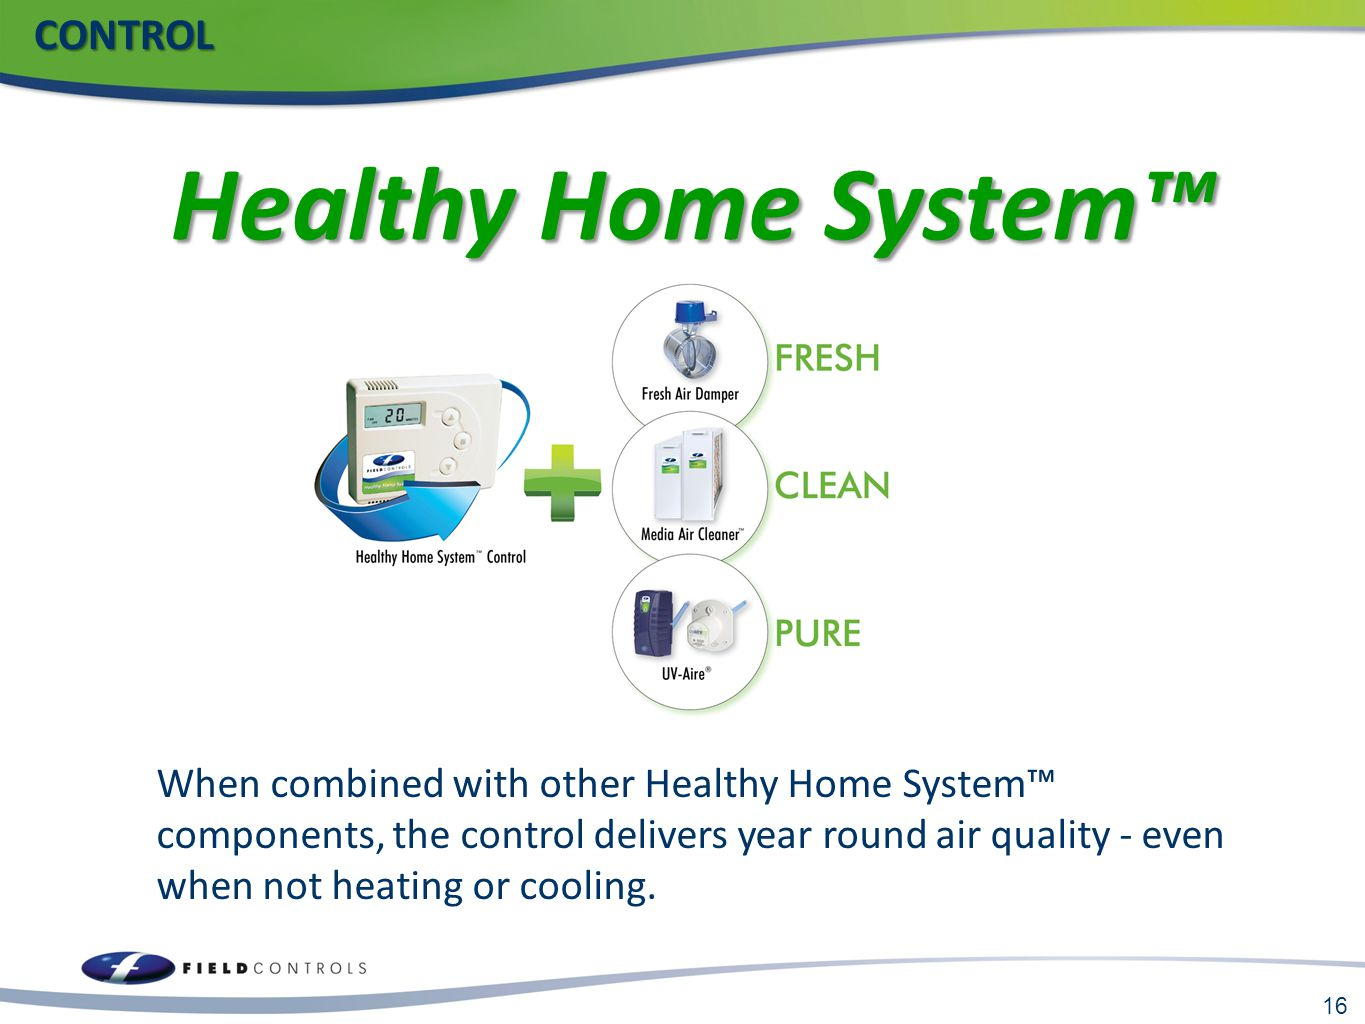 16 CONTROL CONTROL When combined with other Healthy Home System™ components, the control delivers year round air quality - even when not heating or co